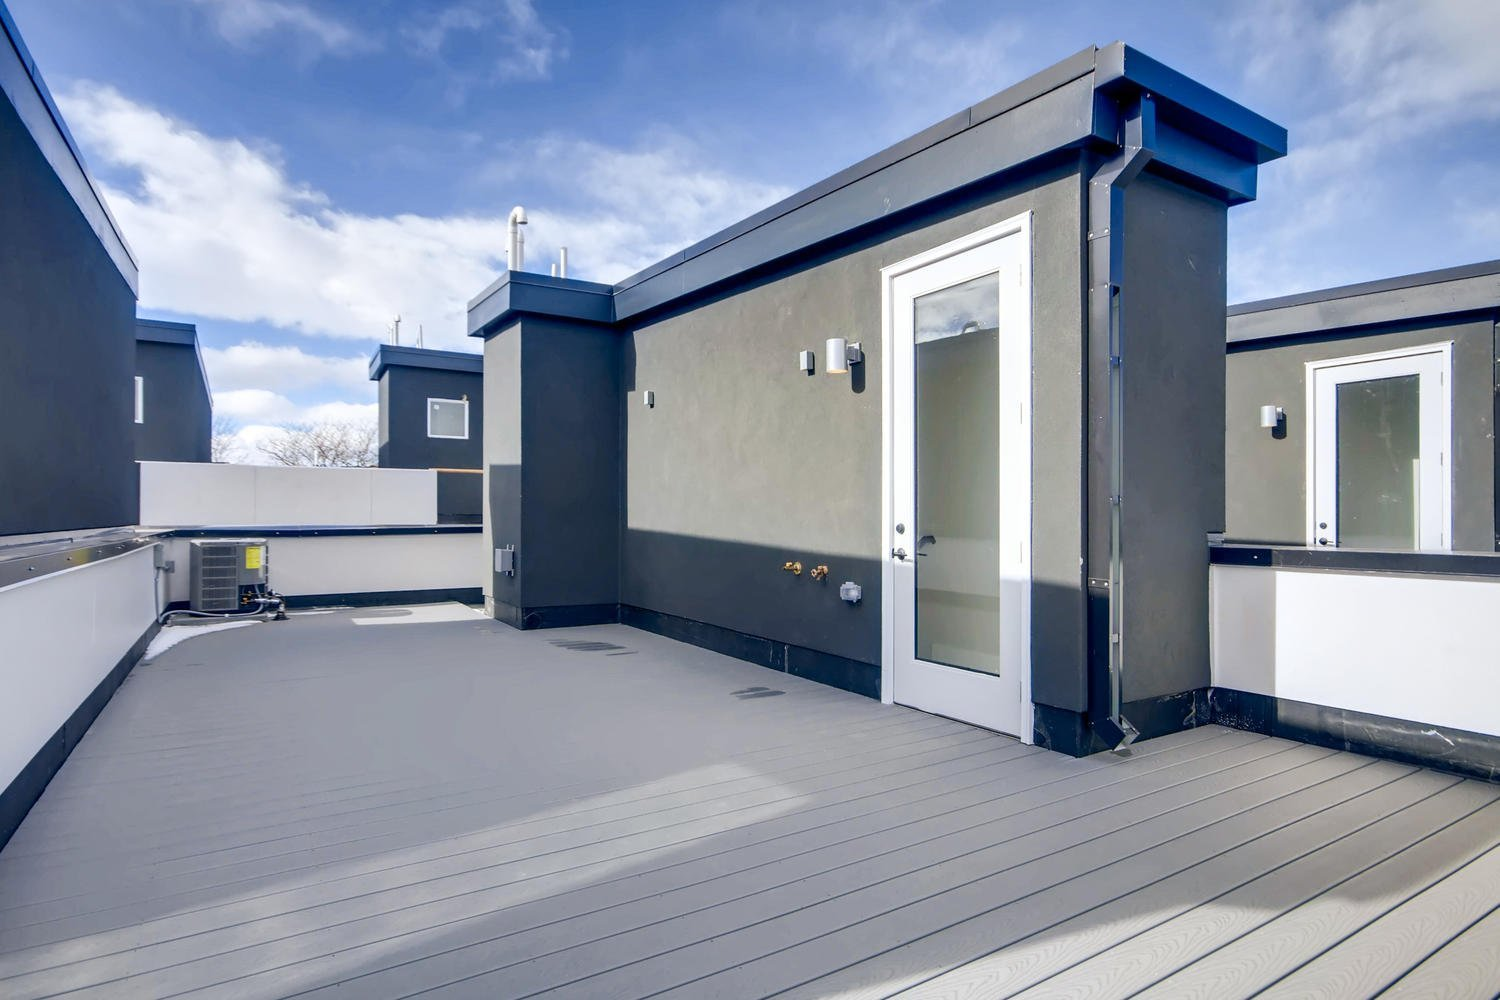 3023 W 19th Ave Denver CO-large-026-6-Rooftop Deck-1500x1000-72dpi